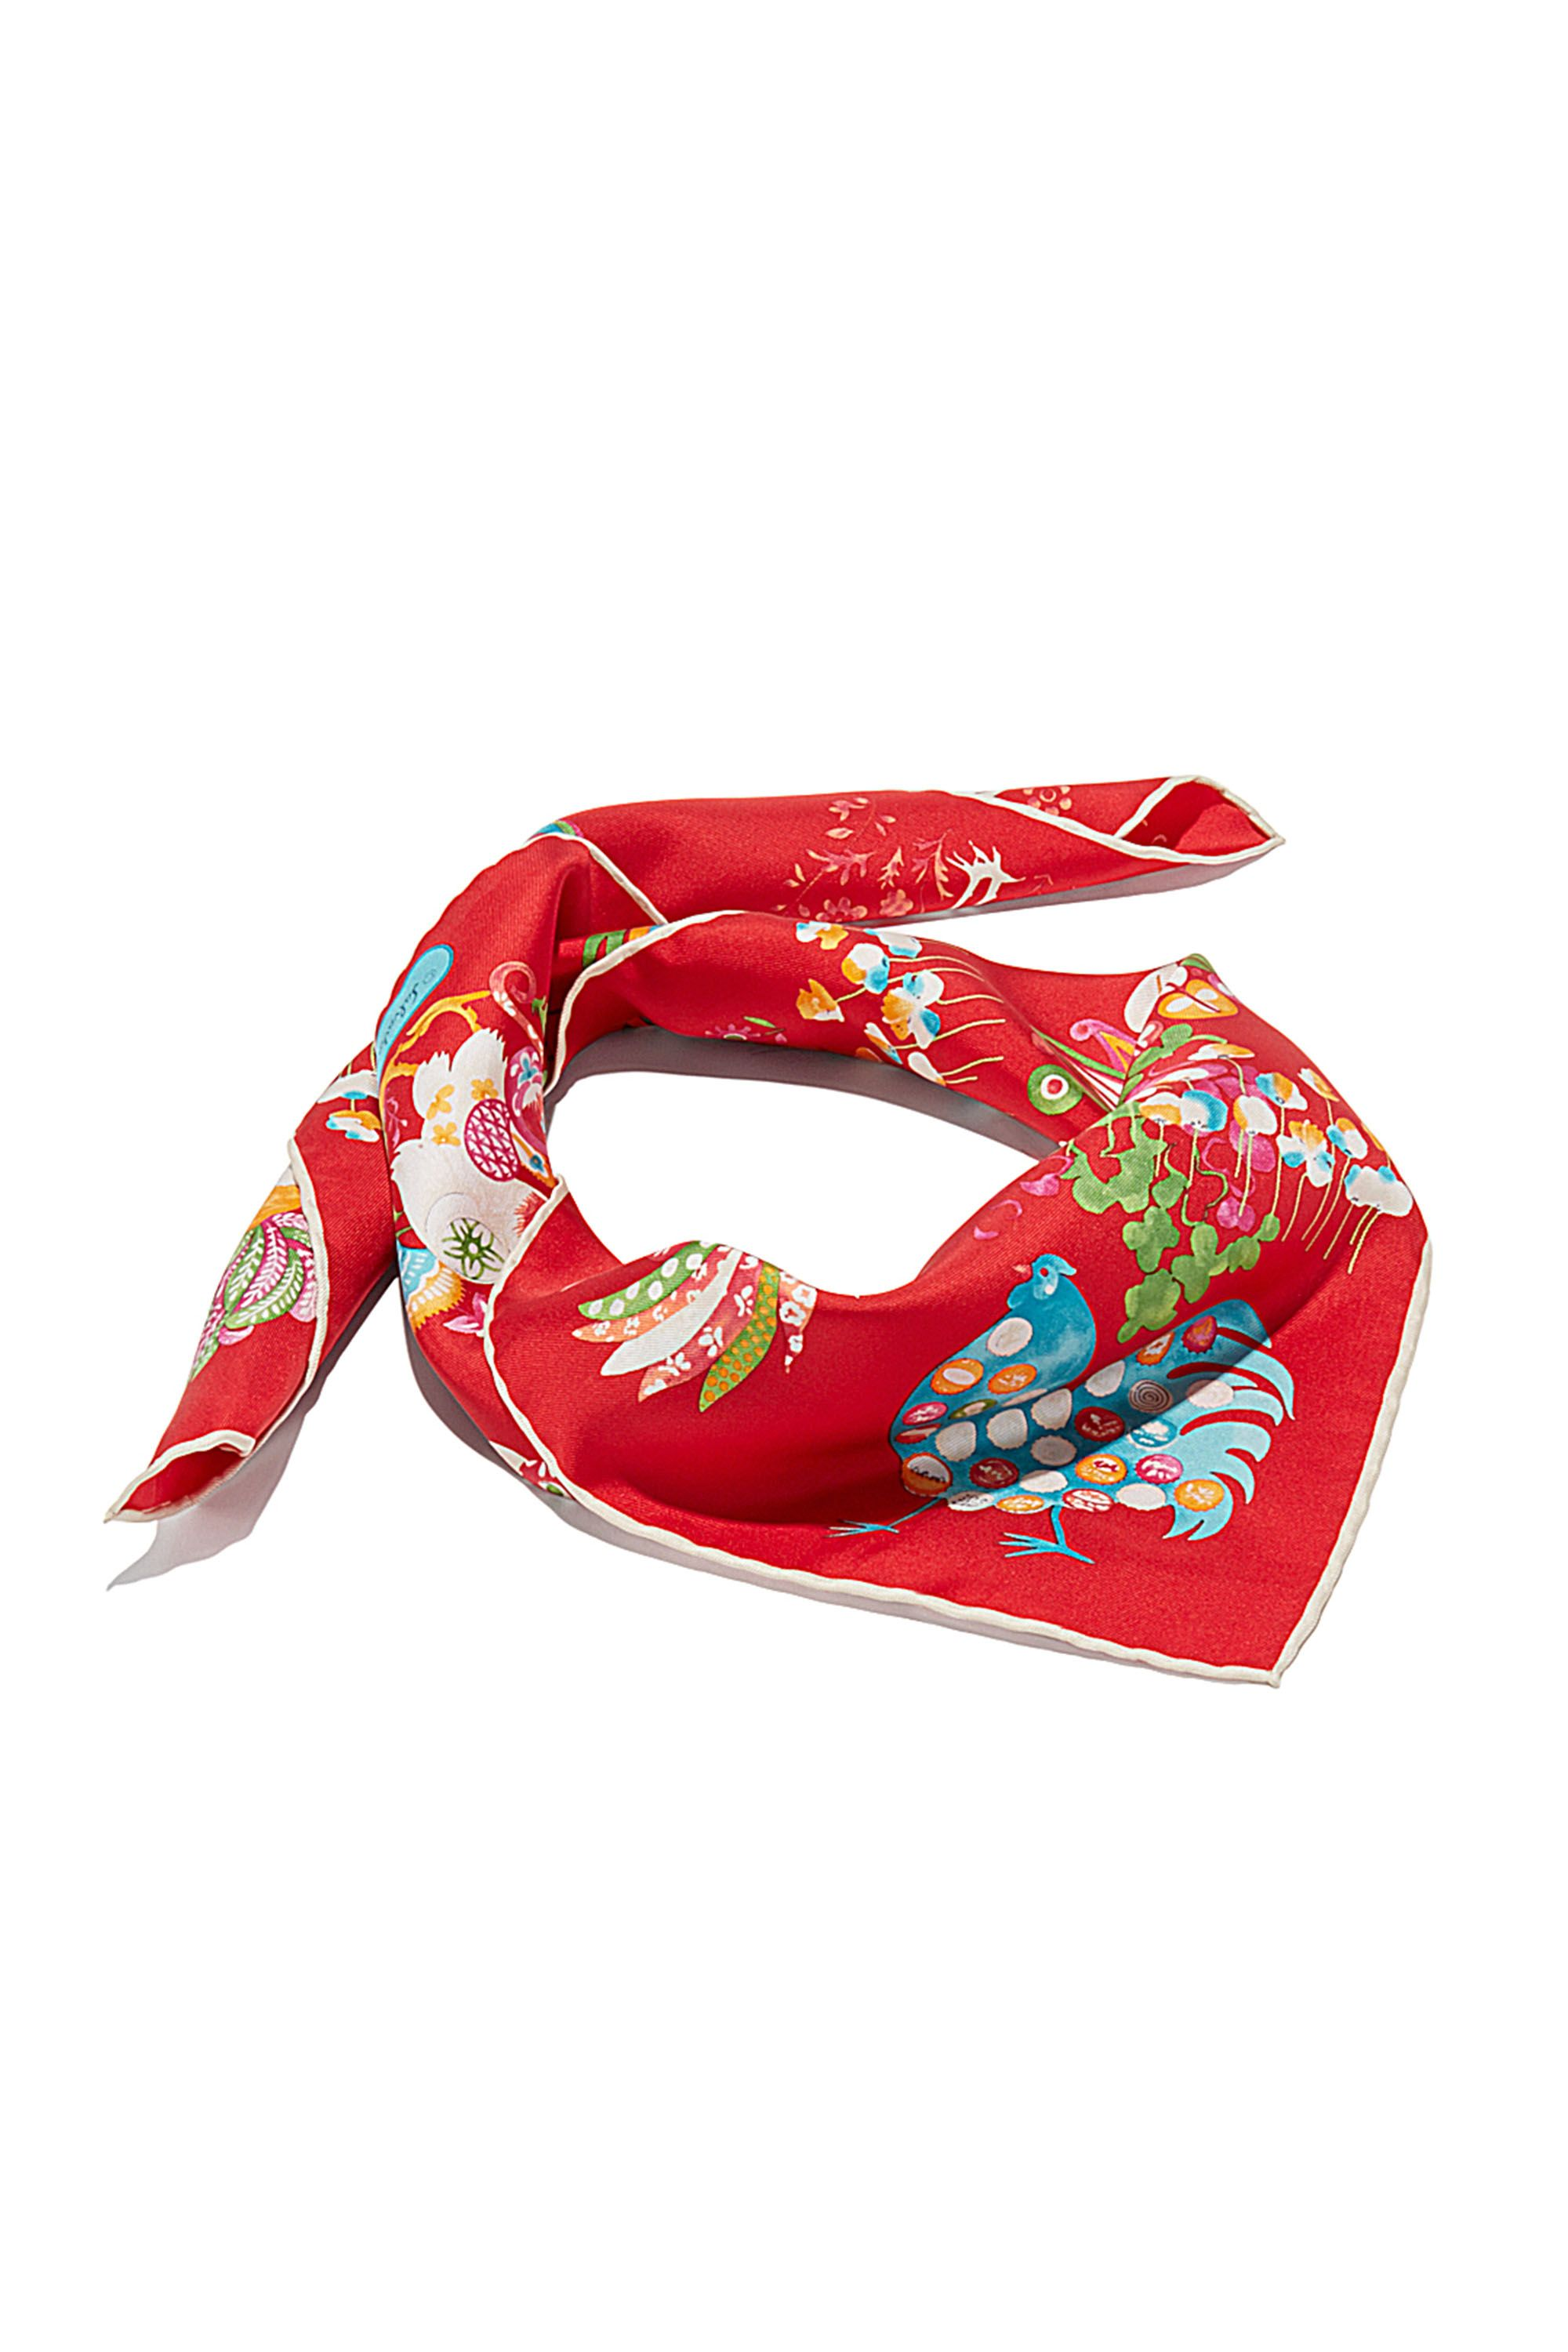 """<p>Salvatore Ferragamo Roosters in Flowers Print Scarf, $230;<a href=""""http://www.ferragamo.com/shop/en/usa/special-collections/lunar-new-year/fo-naive-70-659534--1#pId=6148914691233757498"""" target=""""_blank"""">ferragamo.com</a></p>"""